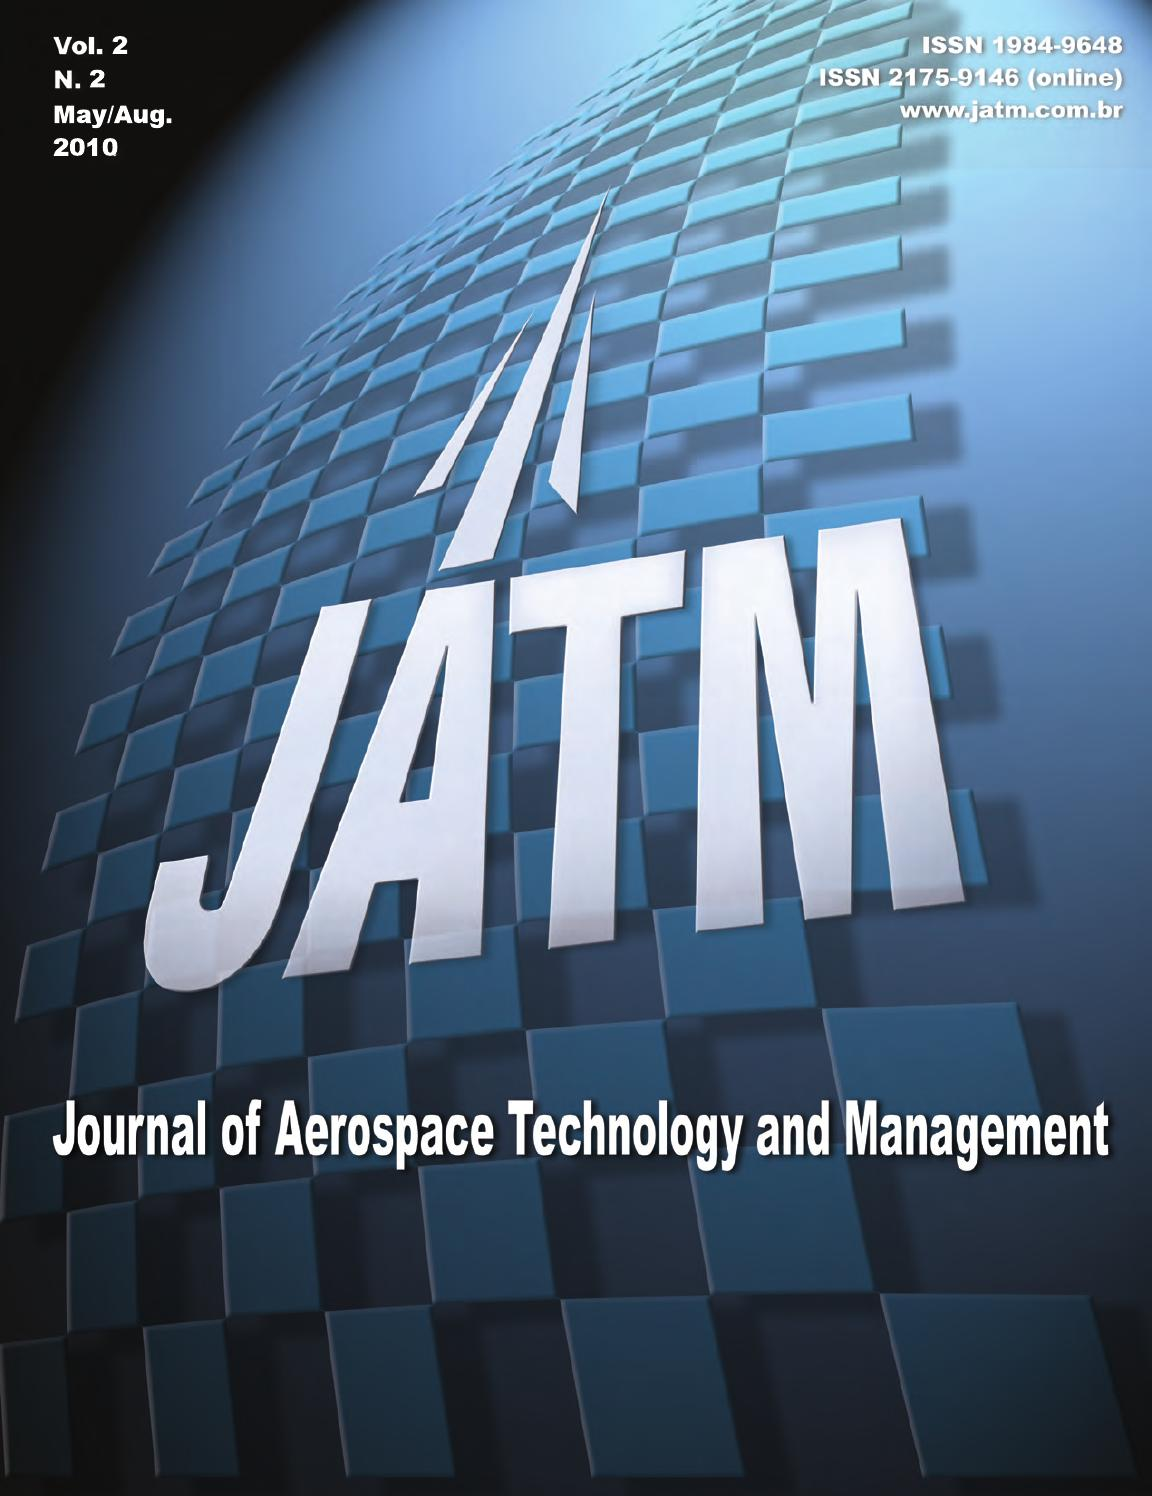 Vol.2 N.2 - Journal of Aerospace Technology and Management by Journal of  Aerospace Technology and Management - issuu